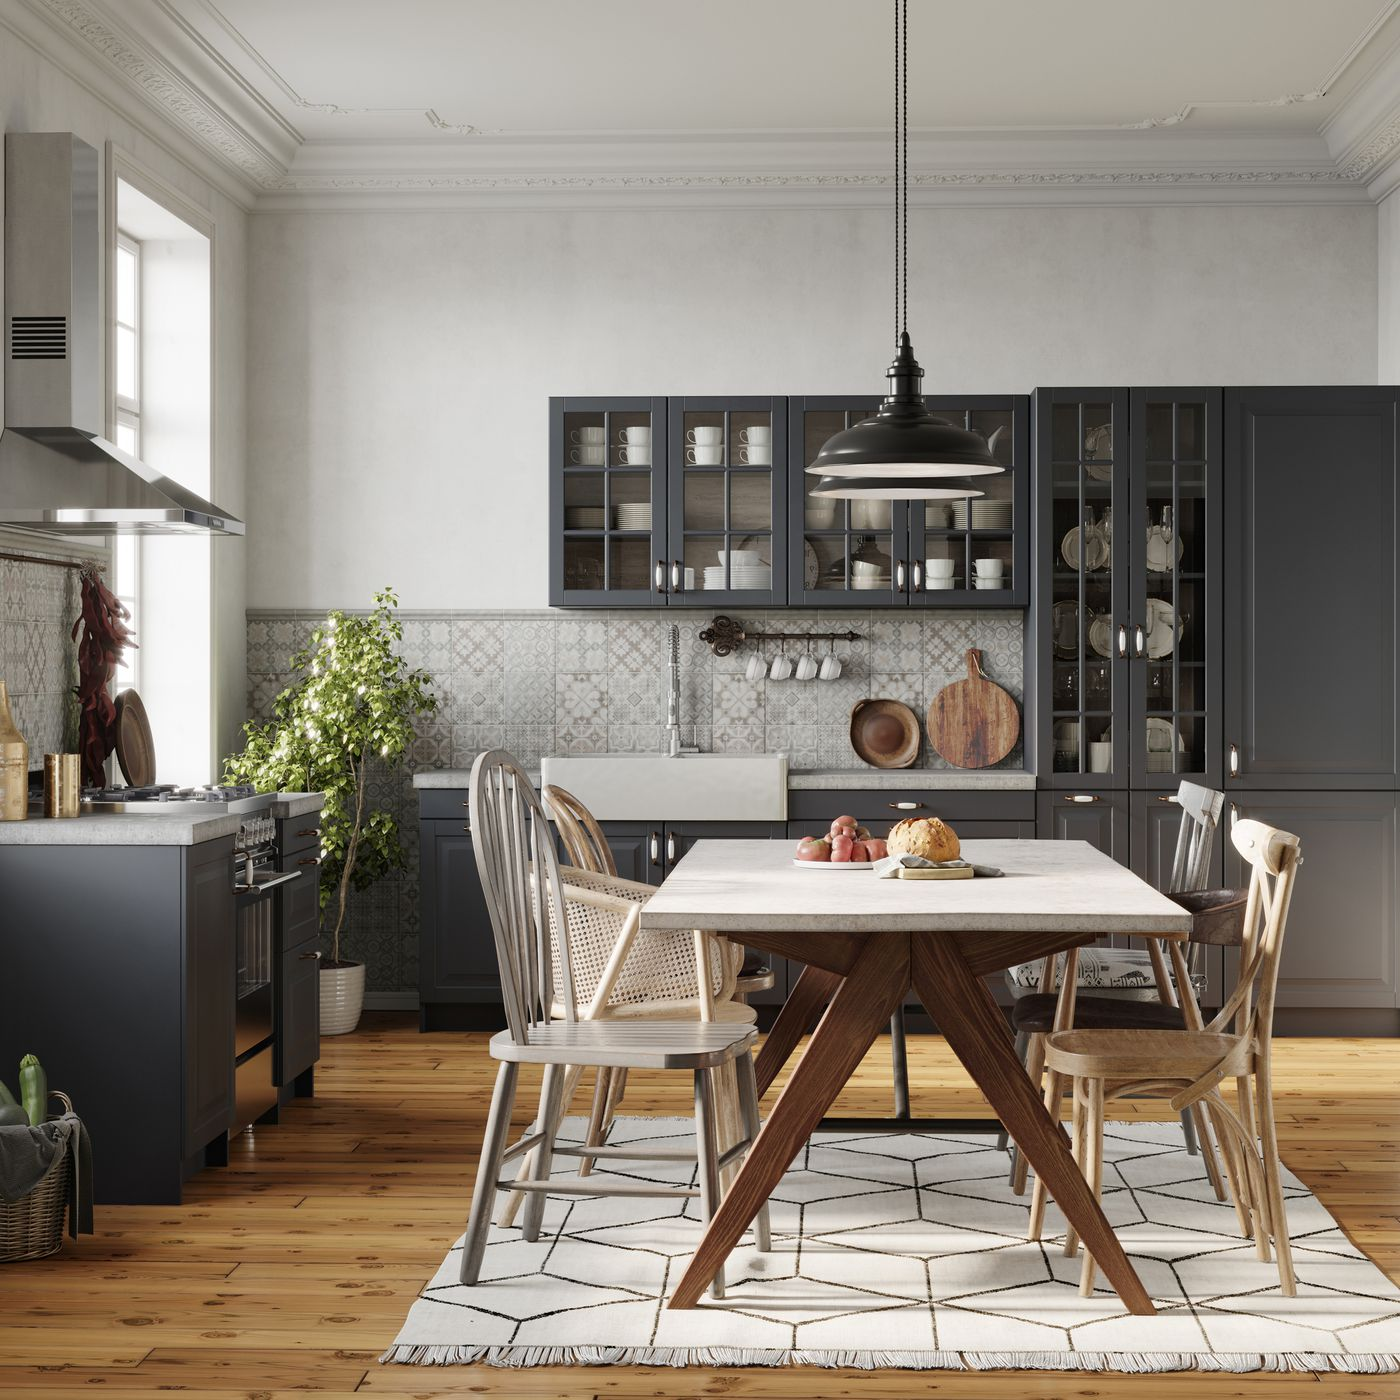 8 Flooring Options This Old House